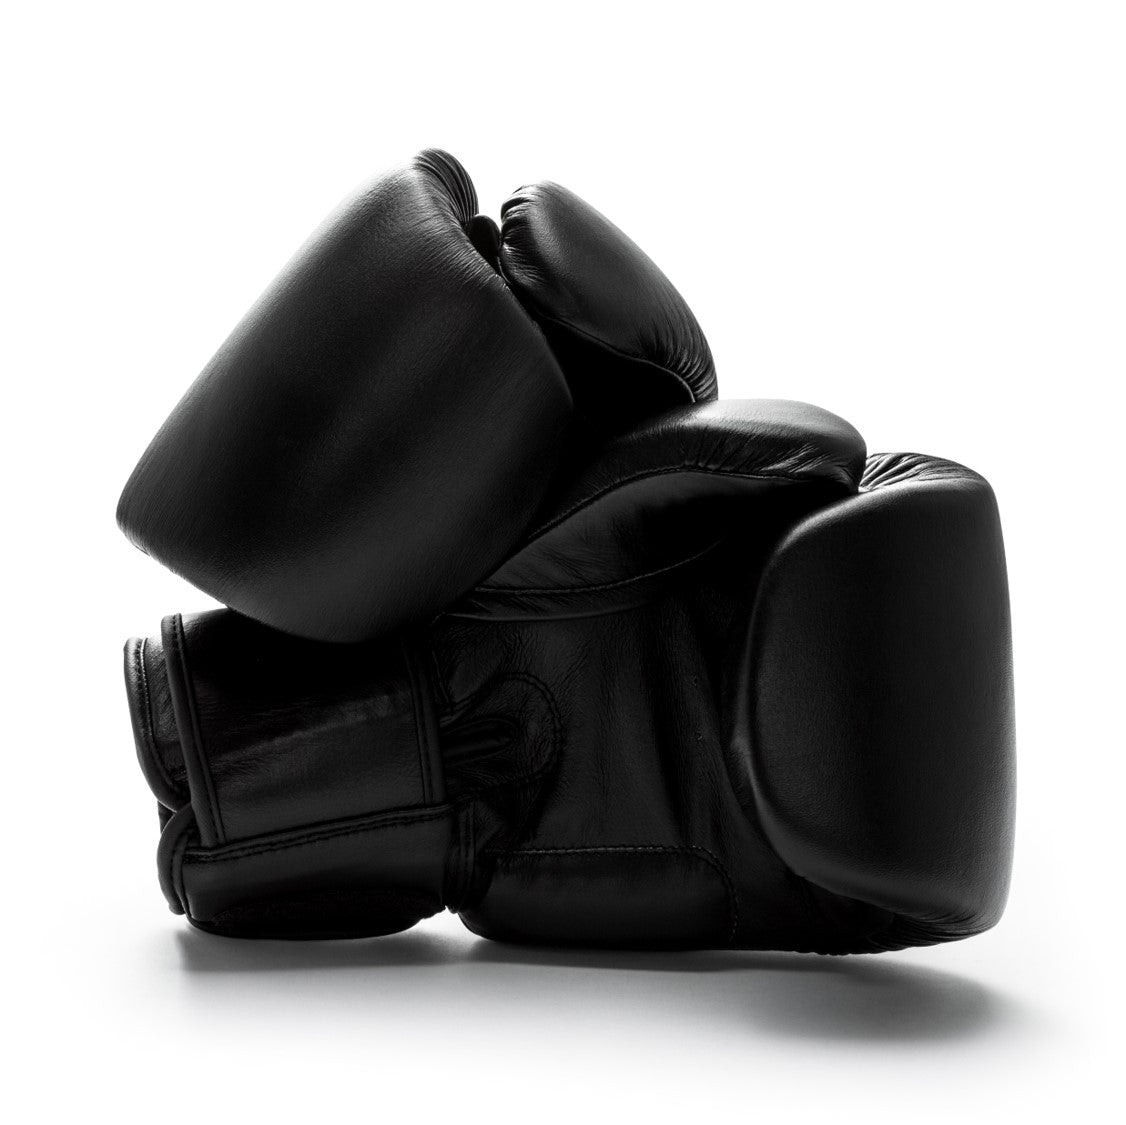 UNIT NINE Black Panther Boxing Gloves 2